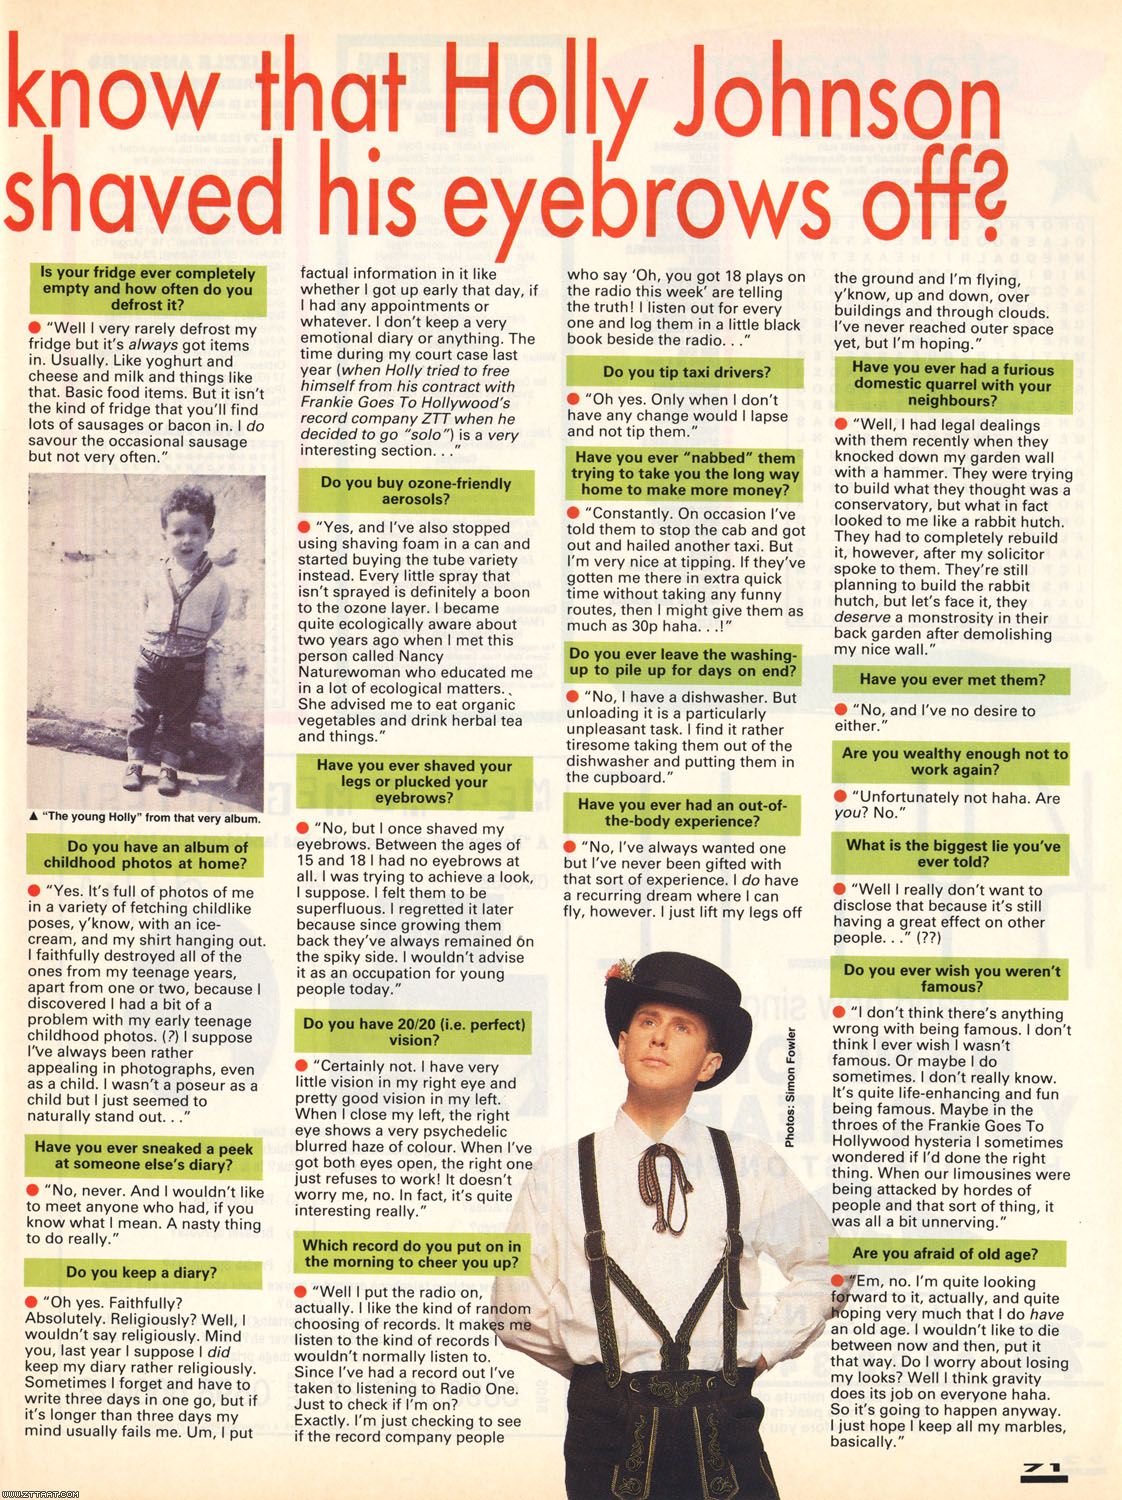 Did you know that Holly Johnson once shaved this eyebrows off